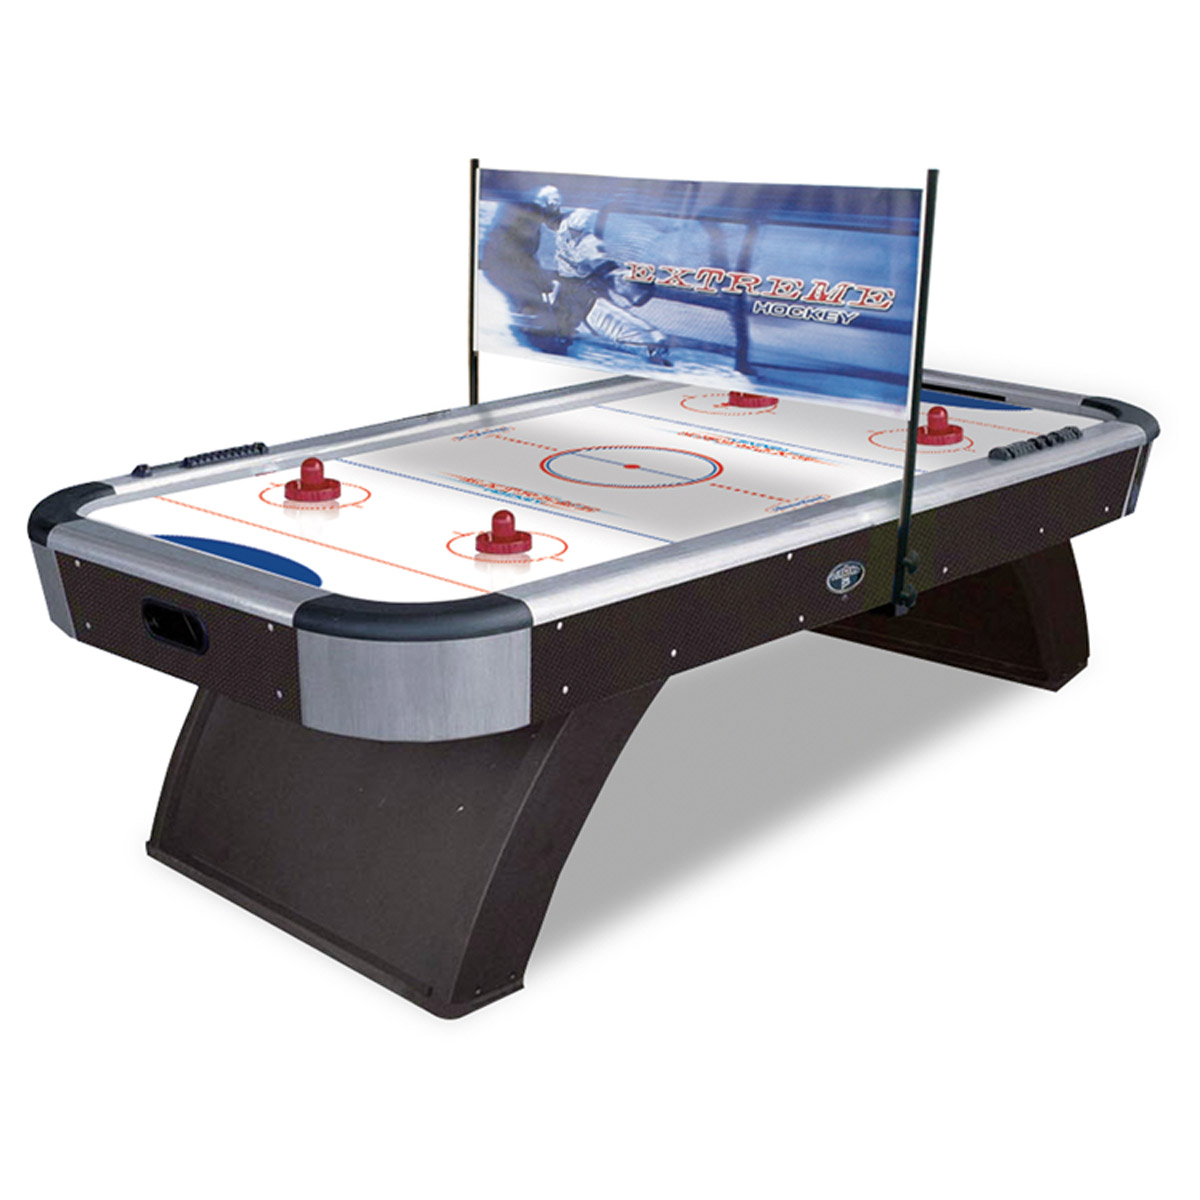 Air hockey table troubleshooting guidegame tables and more 7 foot enforcer extreme air hockey table greentooth Images